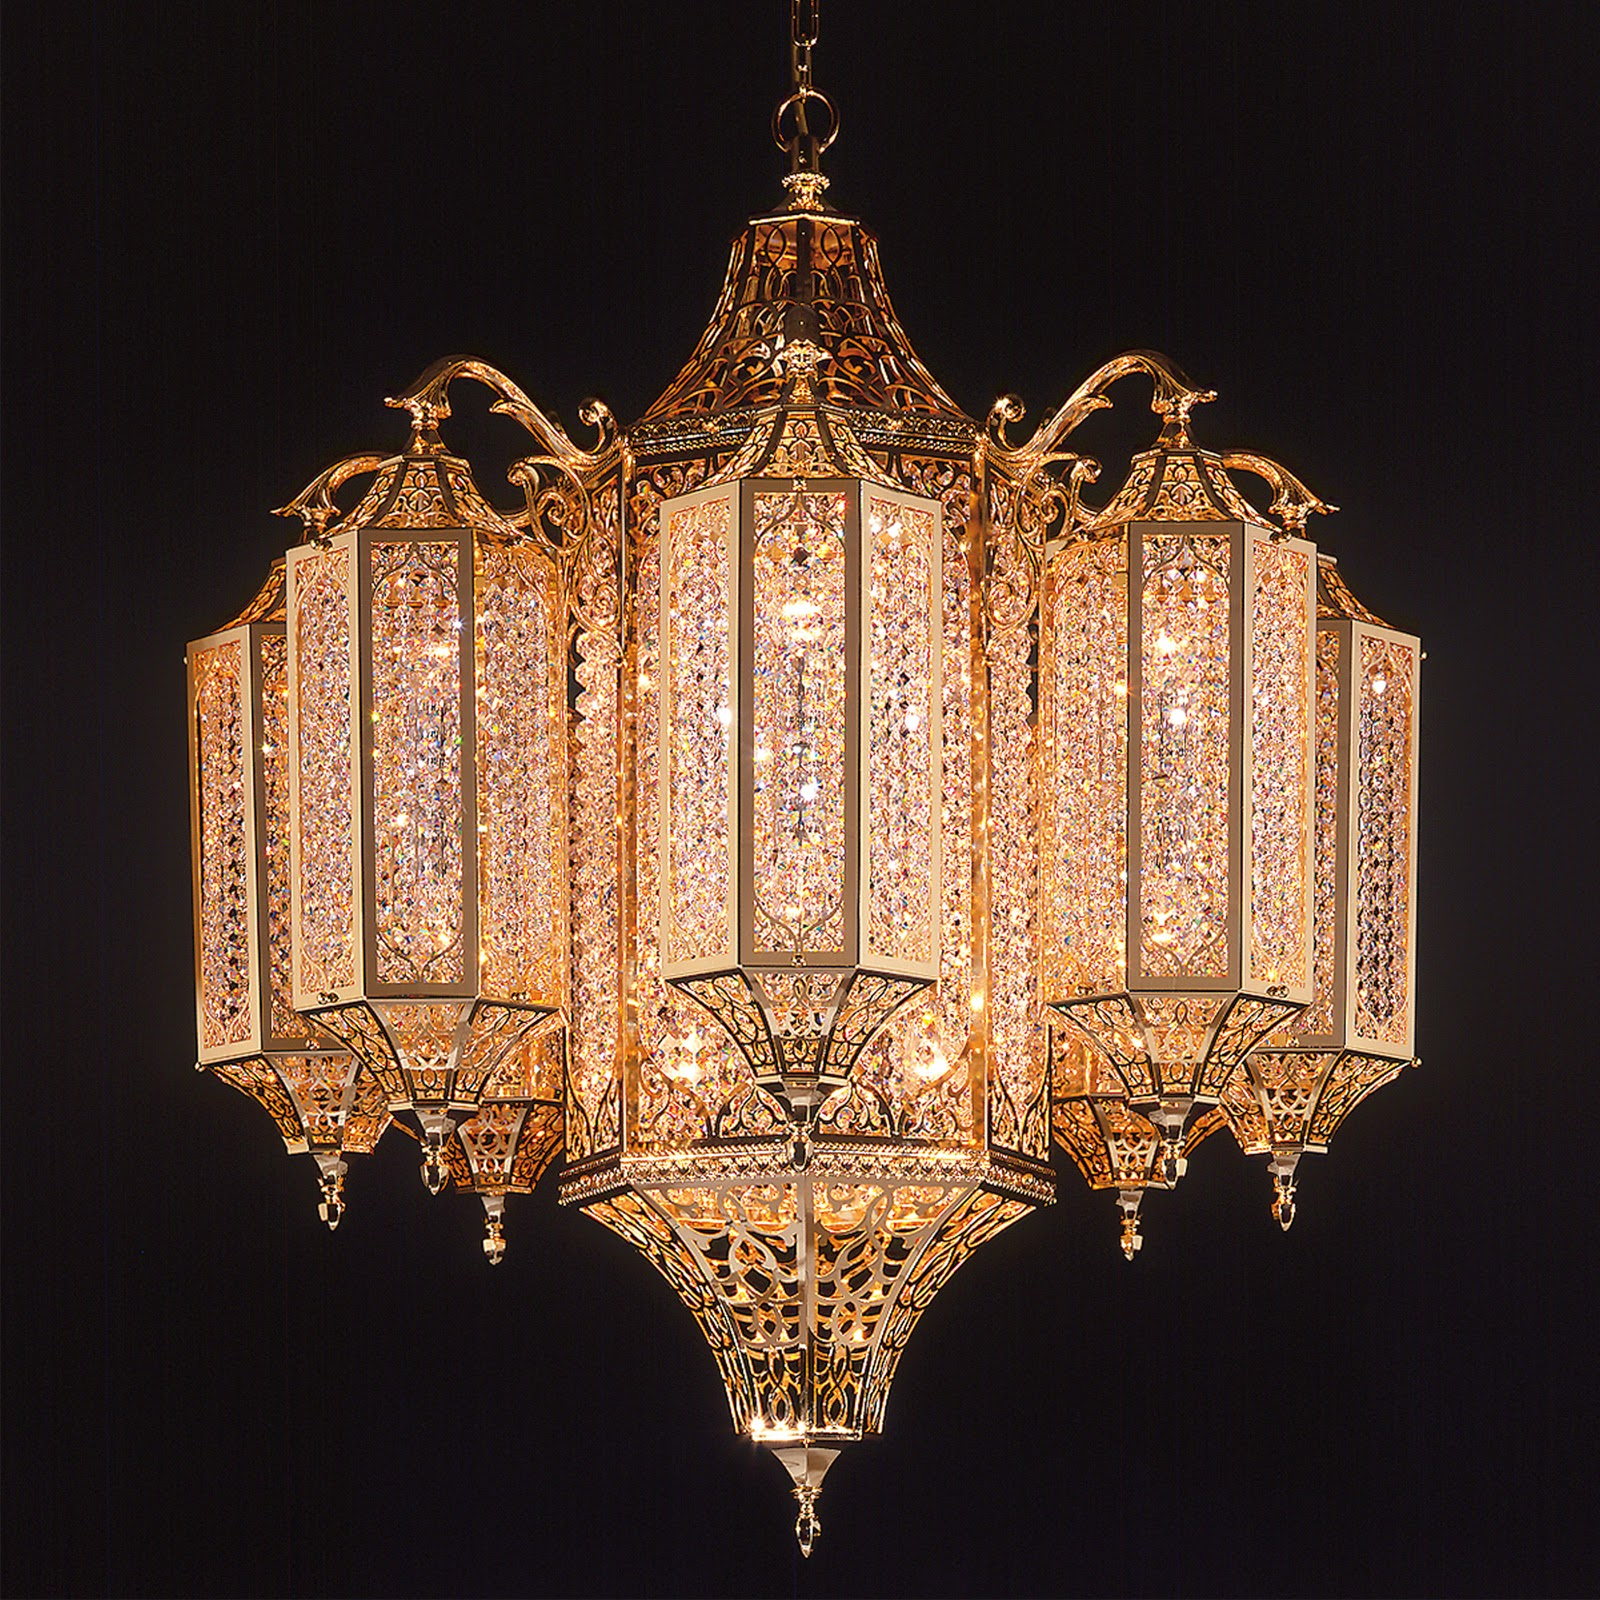 The Fascinating Oriental Gold Swarovski Crystal Chandelier ...